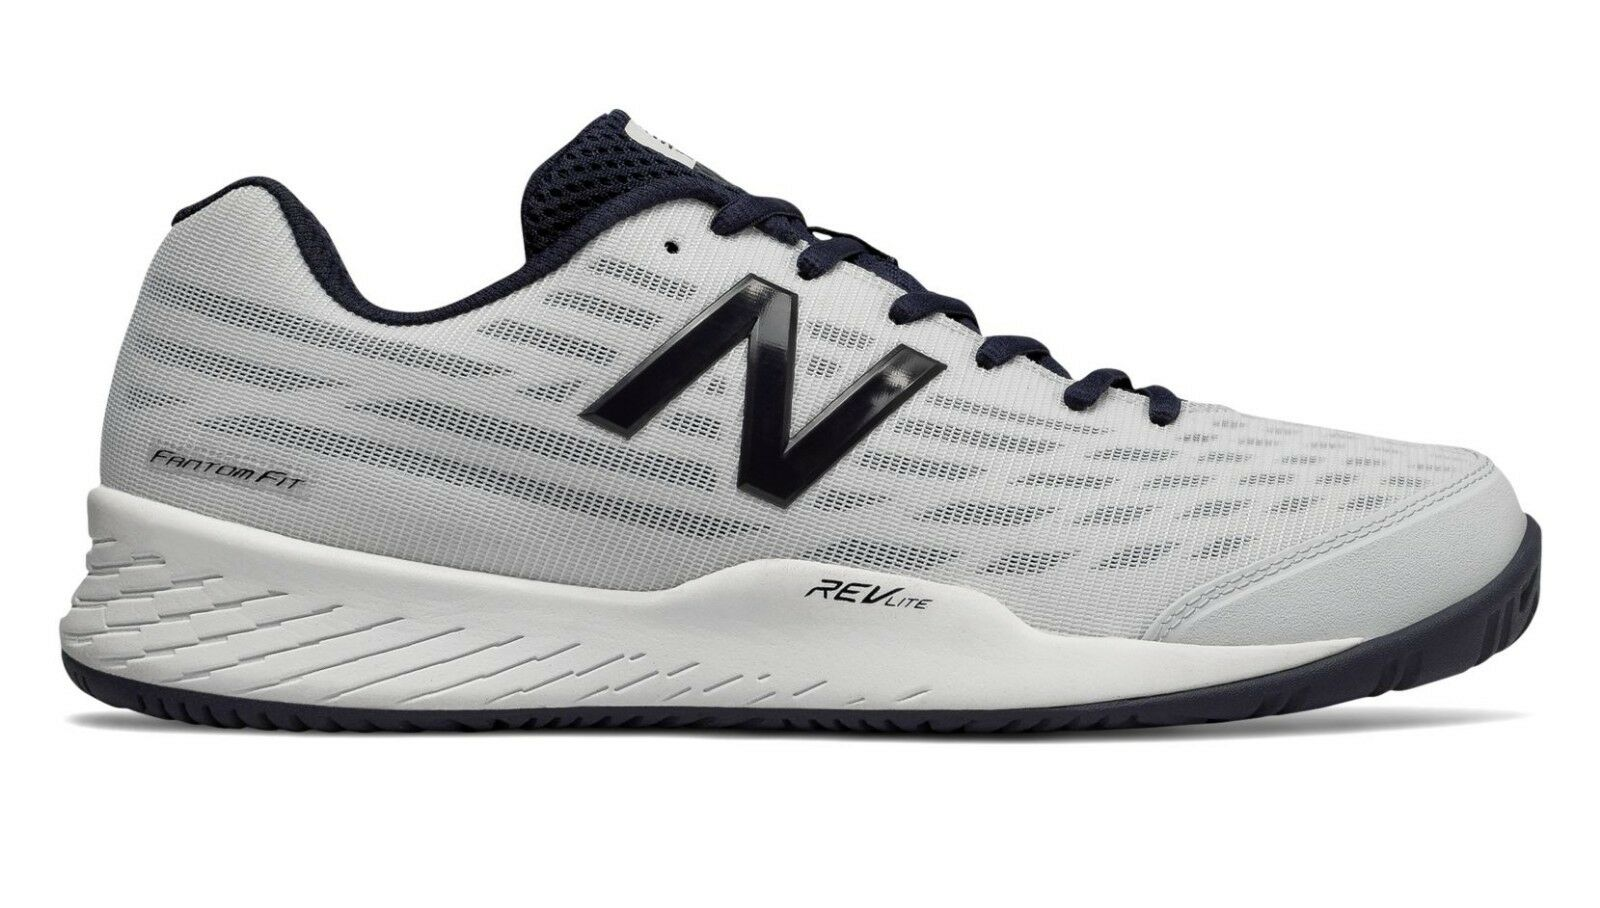 New Balance NB MCH896W2 Men's 896v2 White Performance Tennis shoes Sneakers